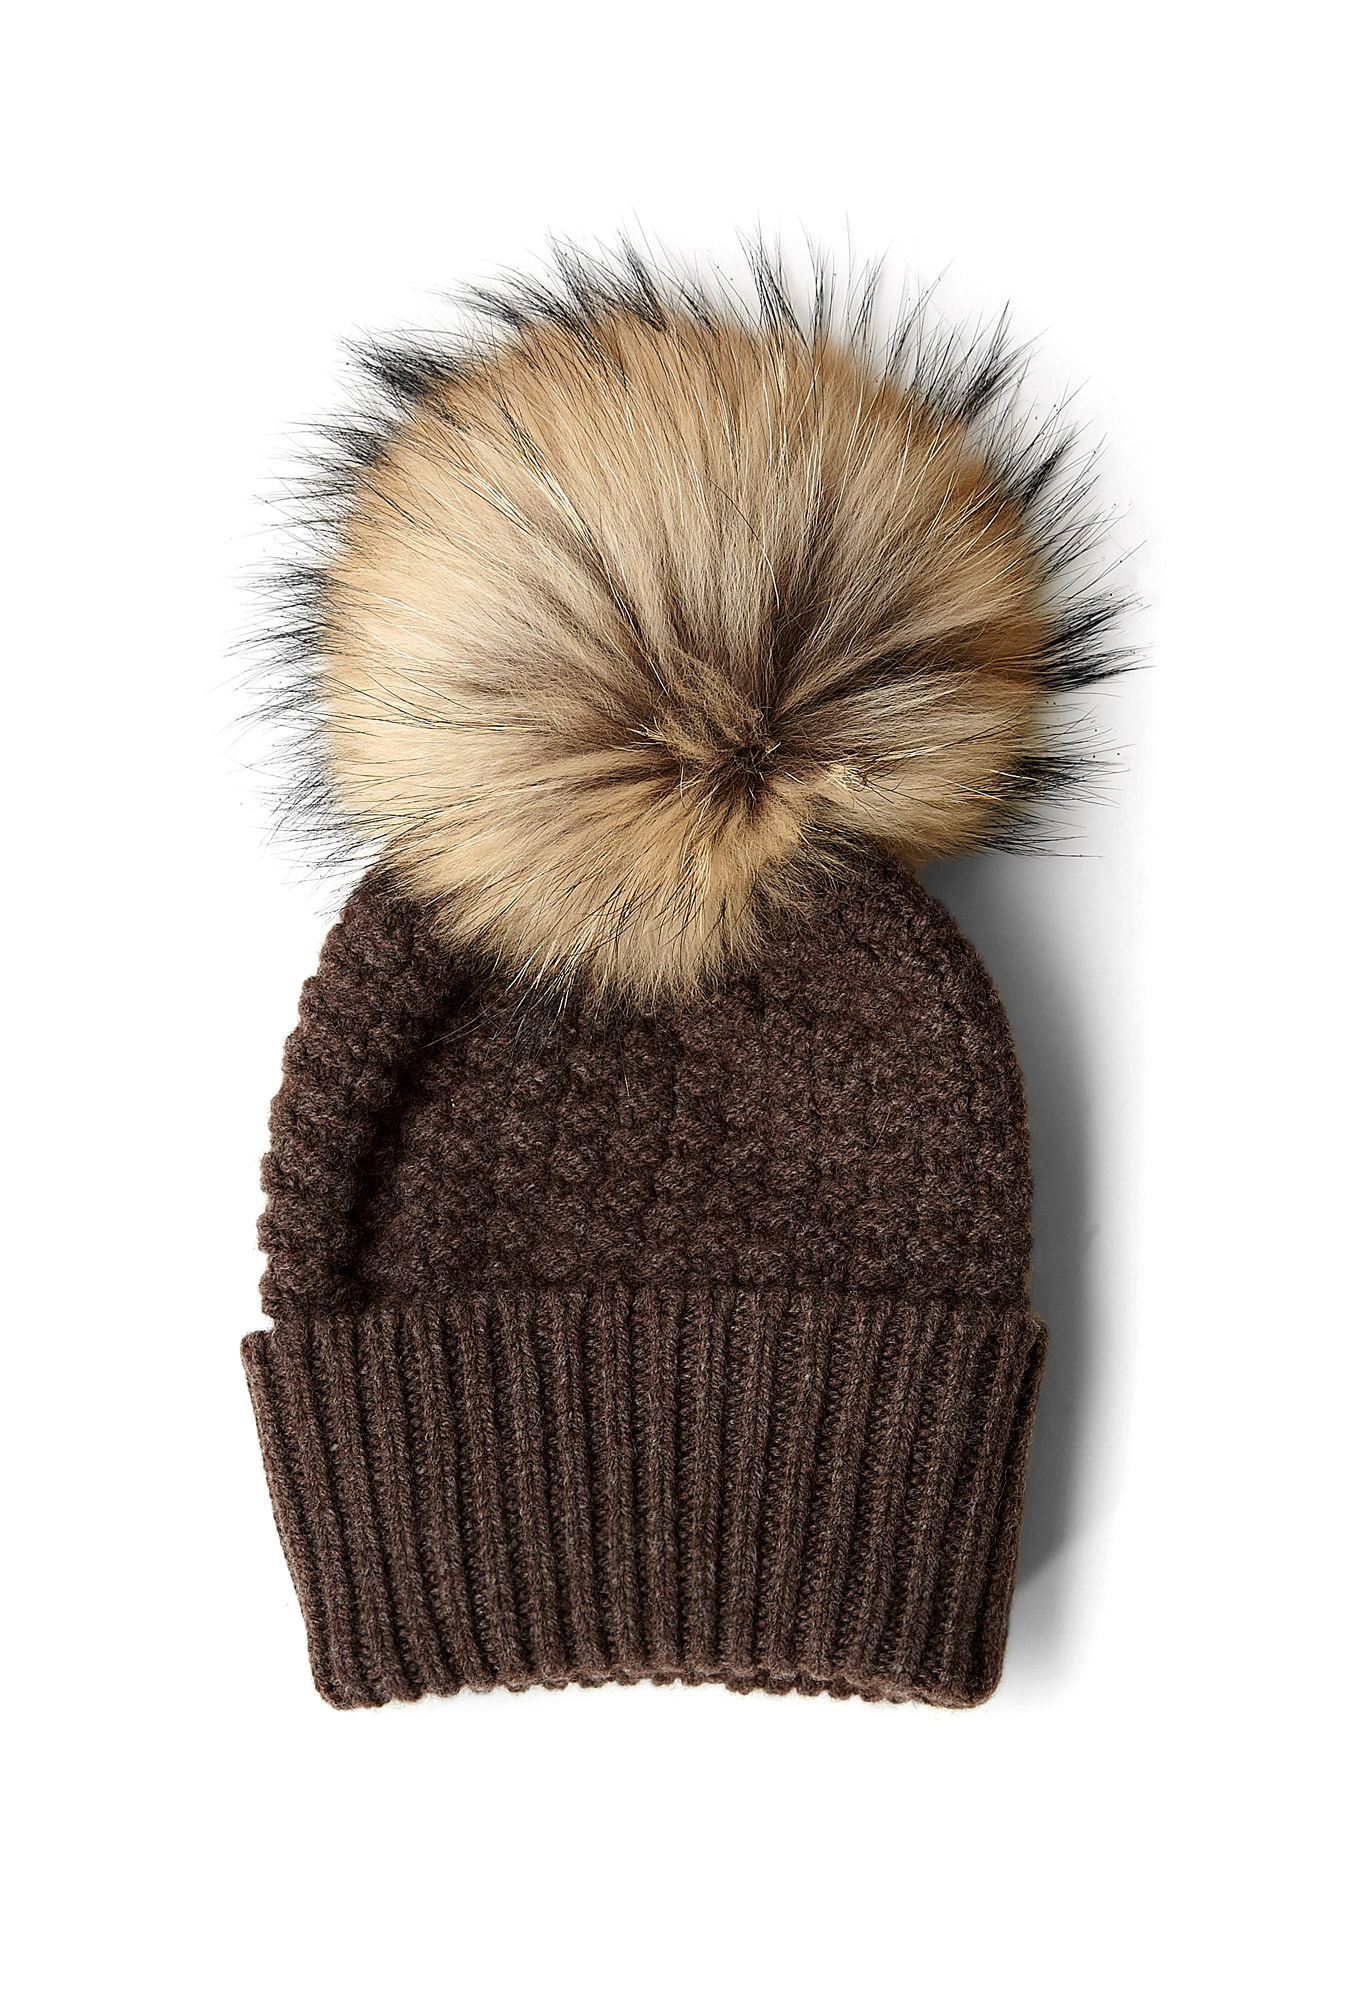 Inverni Firenze | Wool and Cashmere Beanie with Turn Up and Fur Pom Pom by Inverni Firenzi